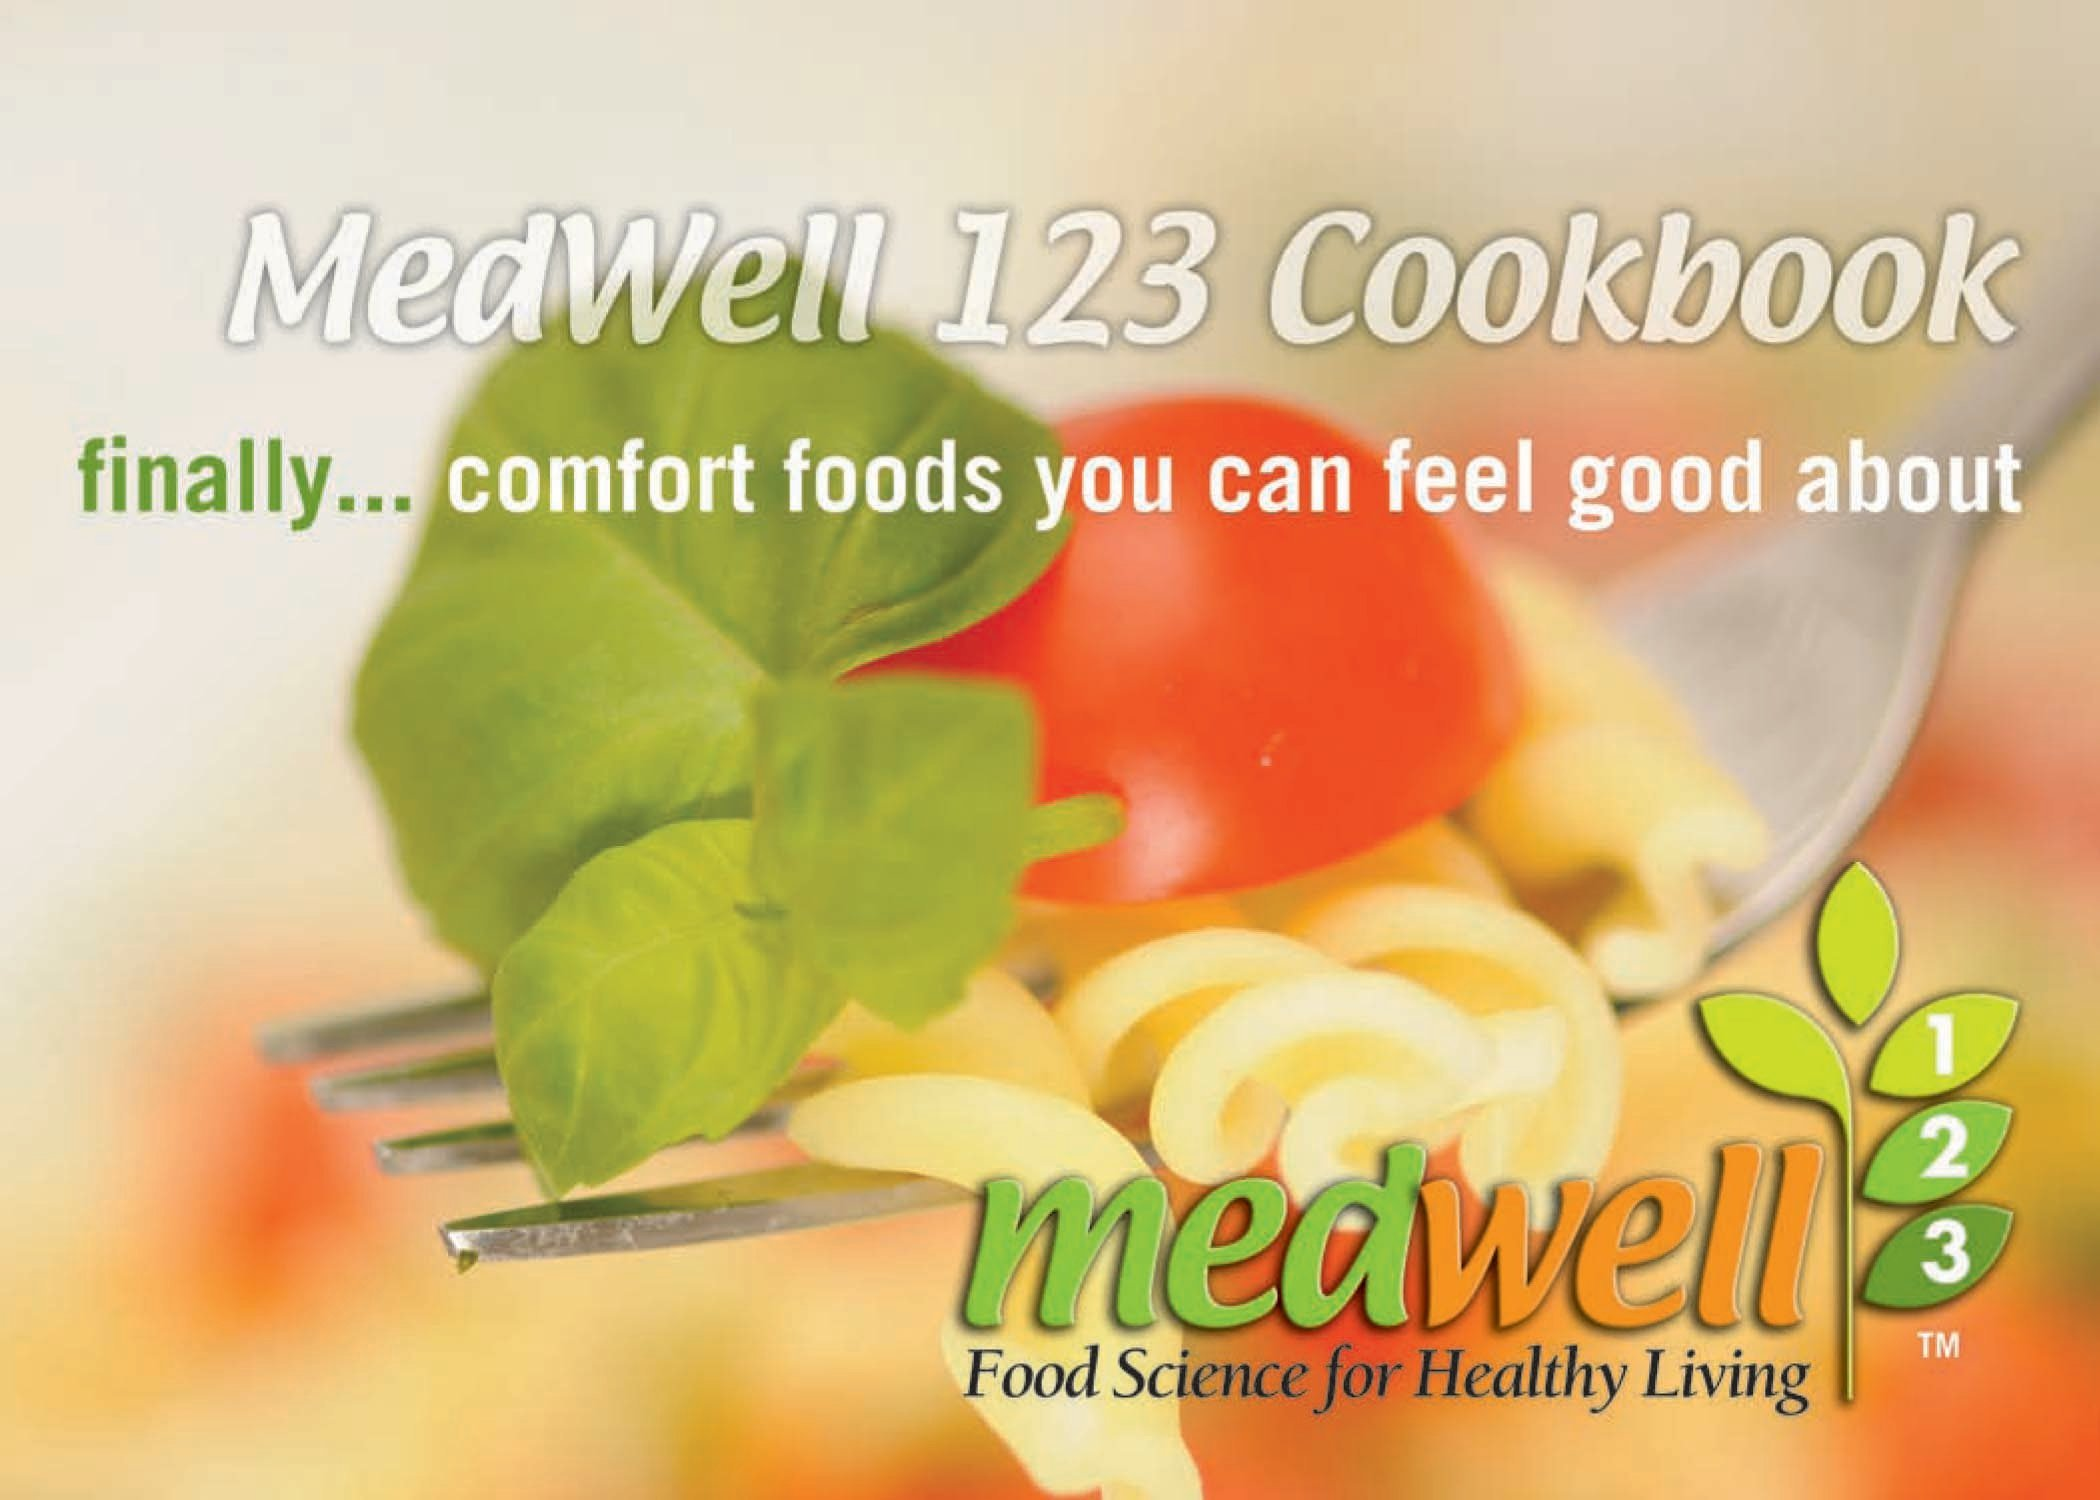 MedWell cookbook_single-1.jpg